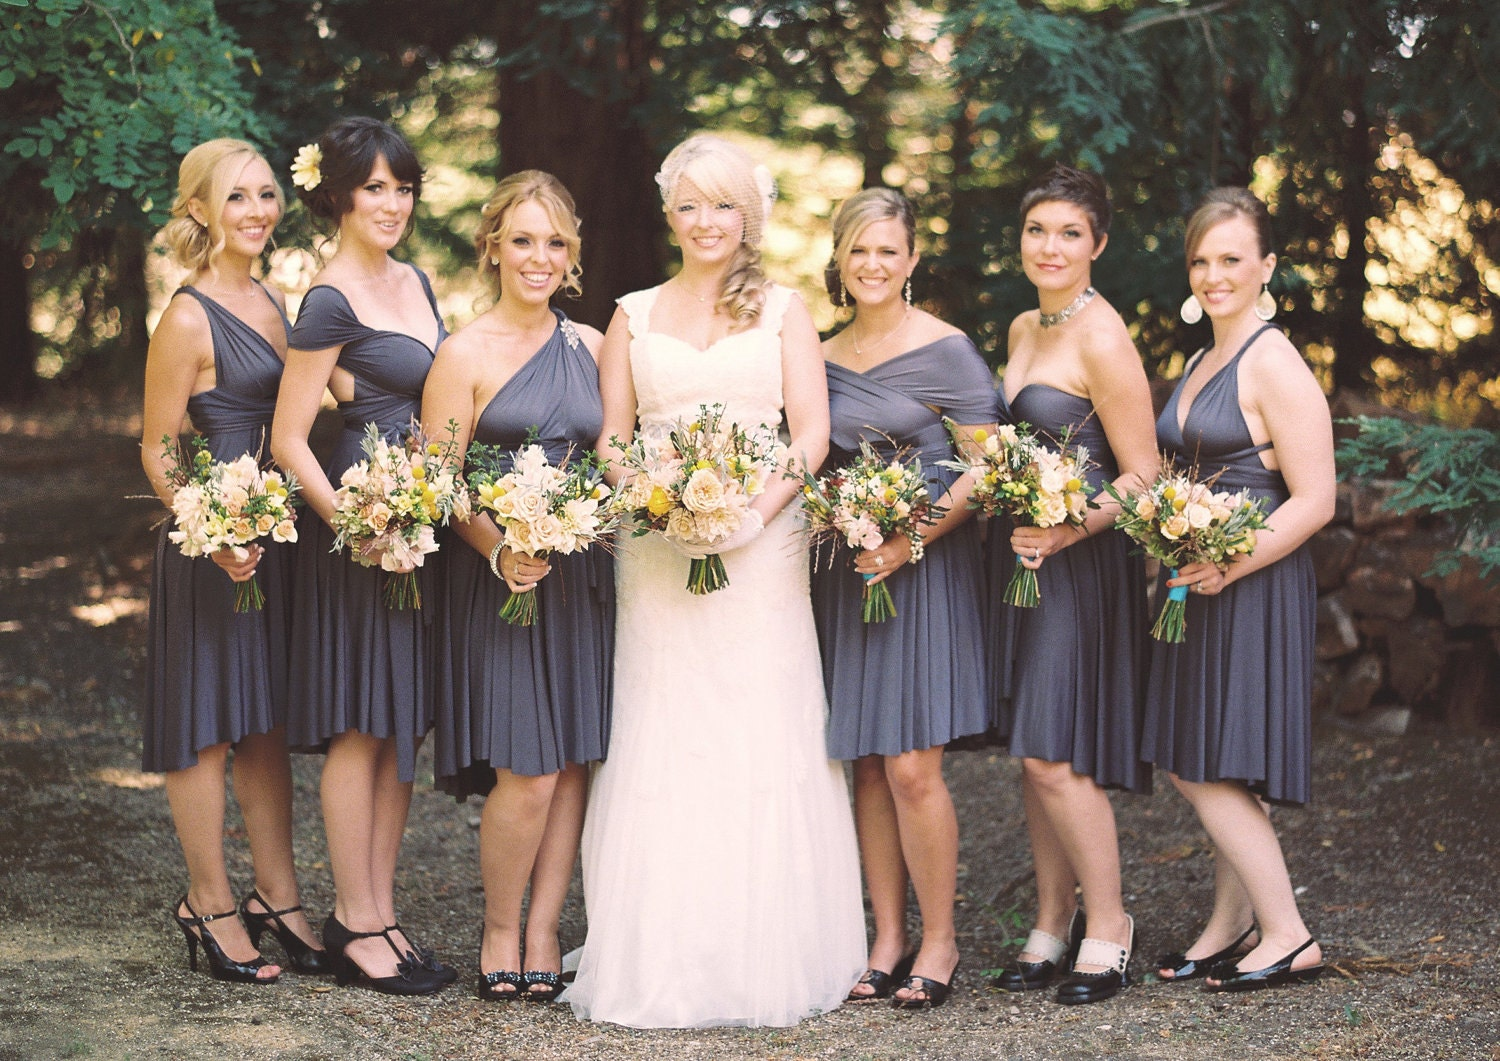 Wedding Grey Bridesmaid Dress grey bridesmaid dress etsy charcoal gray dress